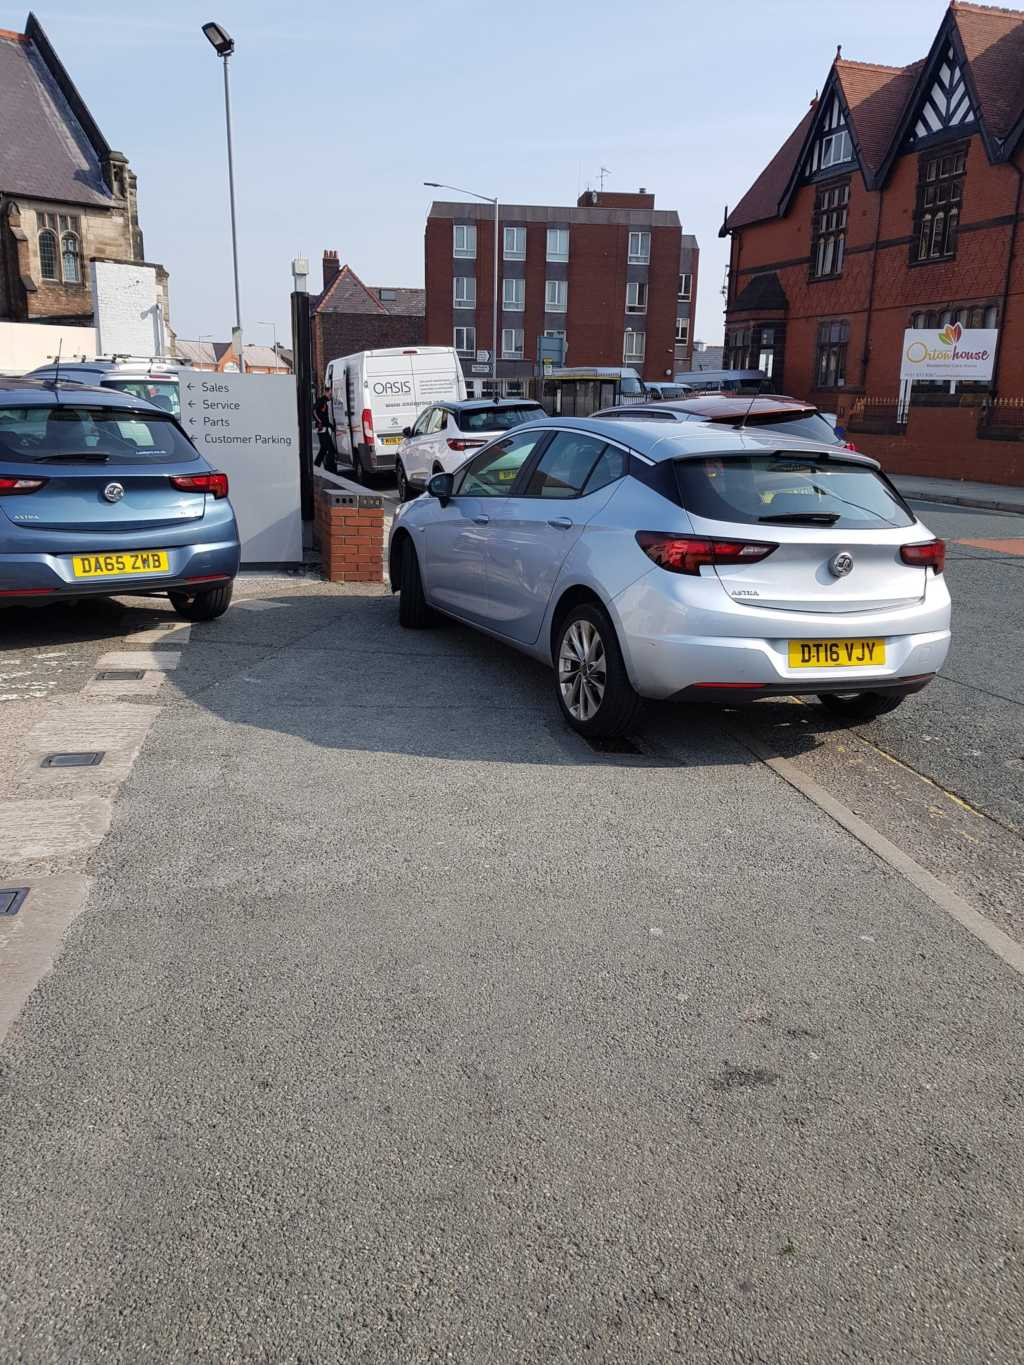 DT16 VJY  displaying Inconsiderate Parking